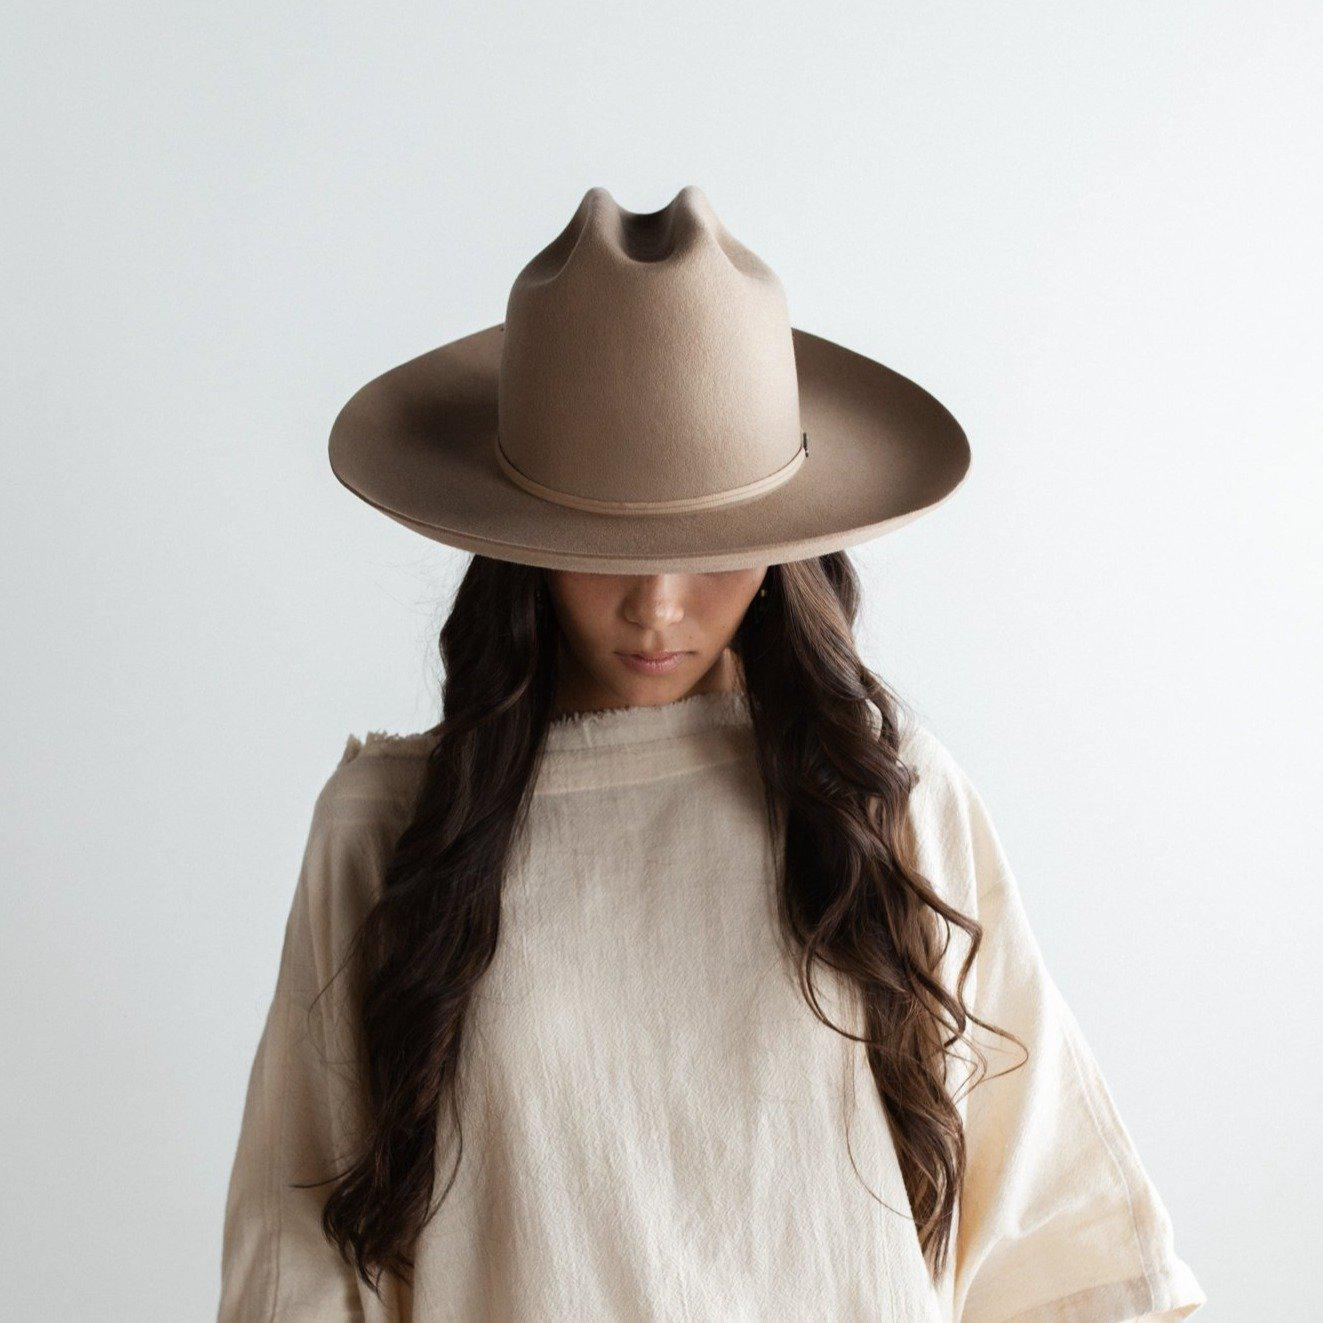 GIGI PIP Hats for Women- Ezra Western Hat - Tan-Felt Hats